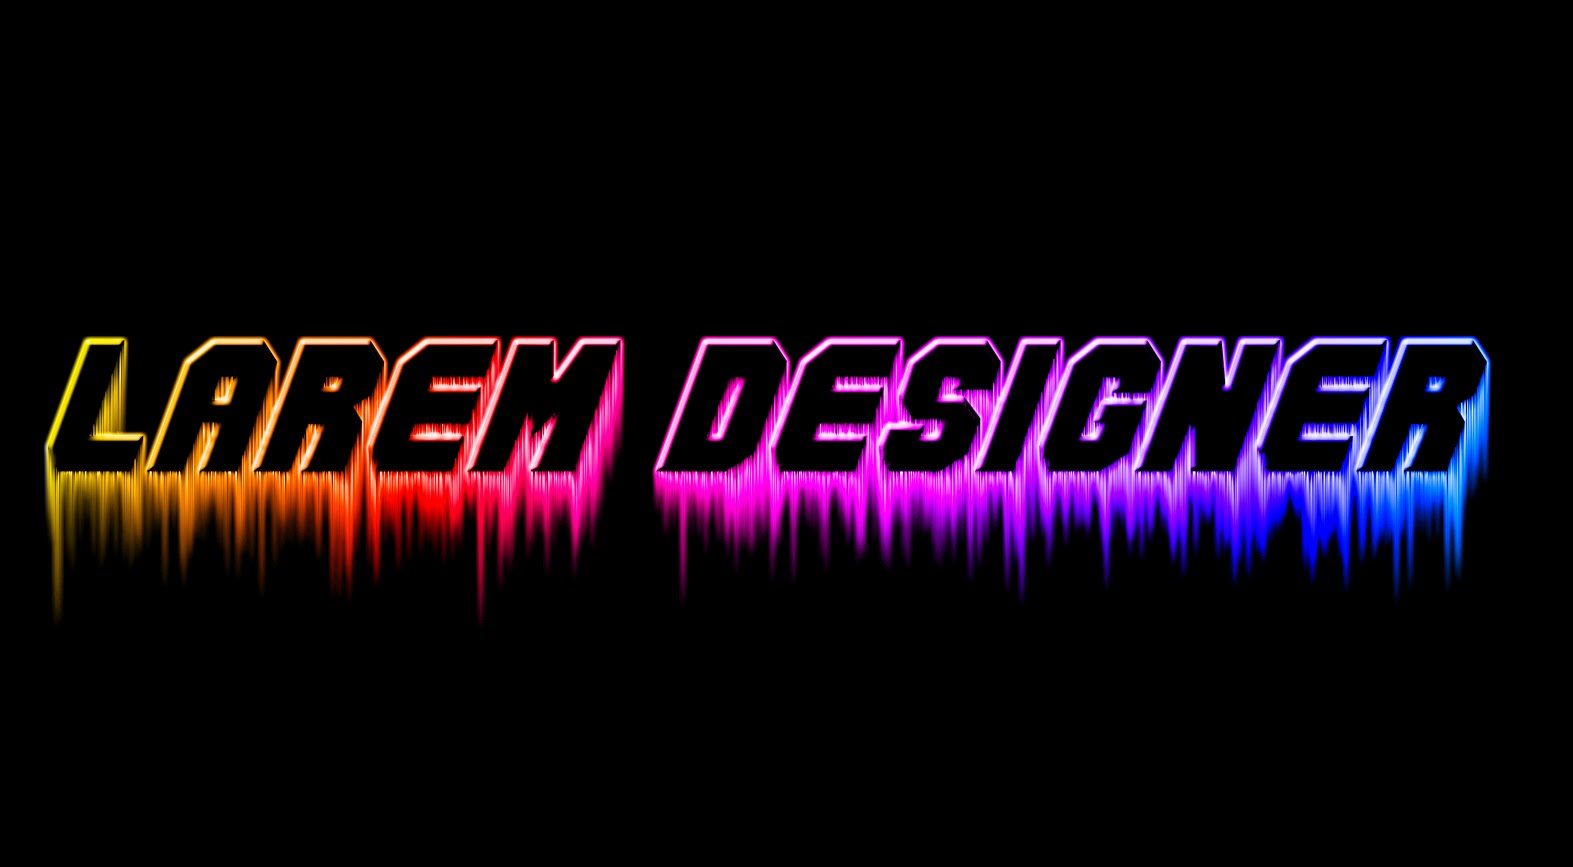 Coloring text effect texts photoshop tutorialsg larem designer coloring text effect texts photoshop tutorials baditri Image collections